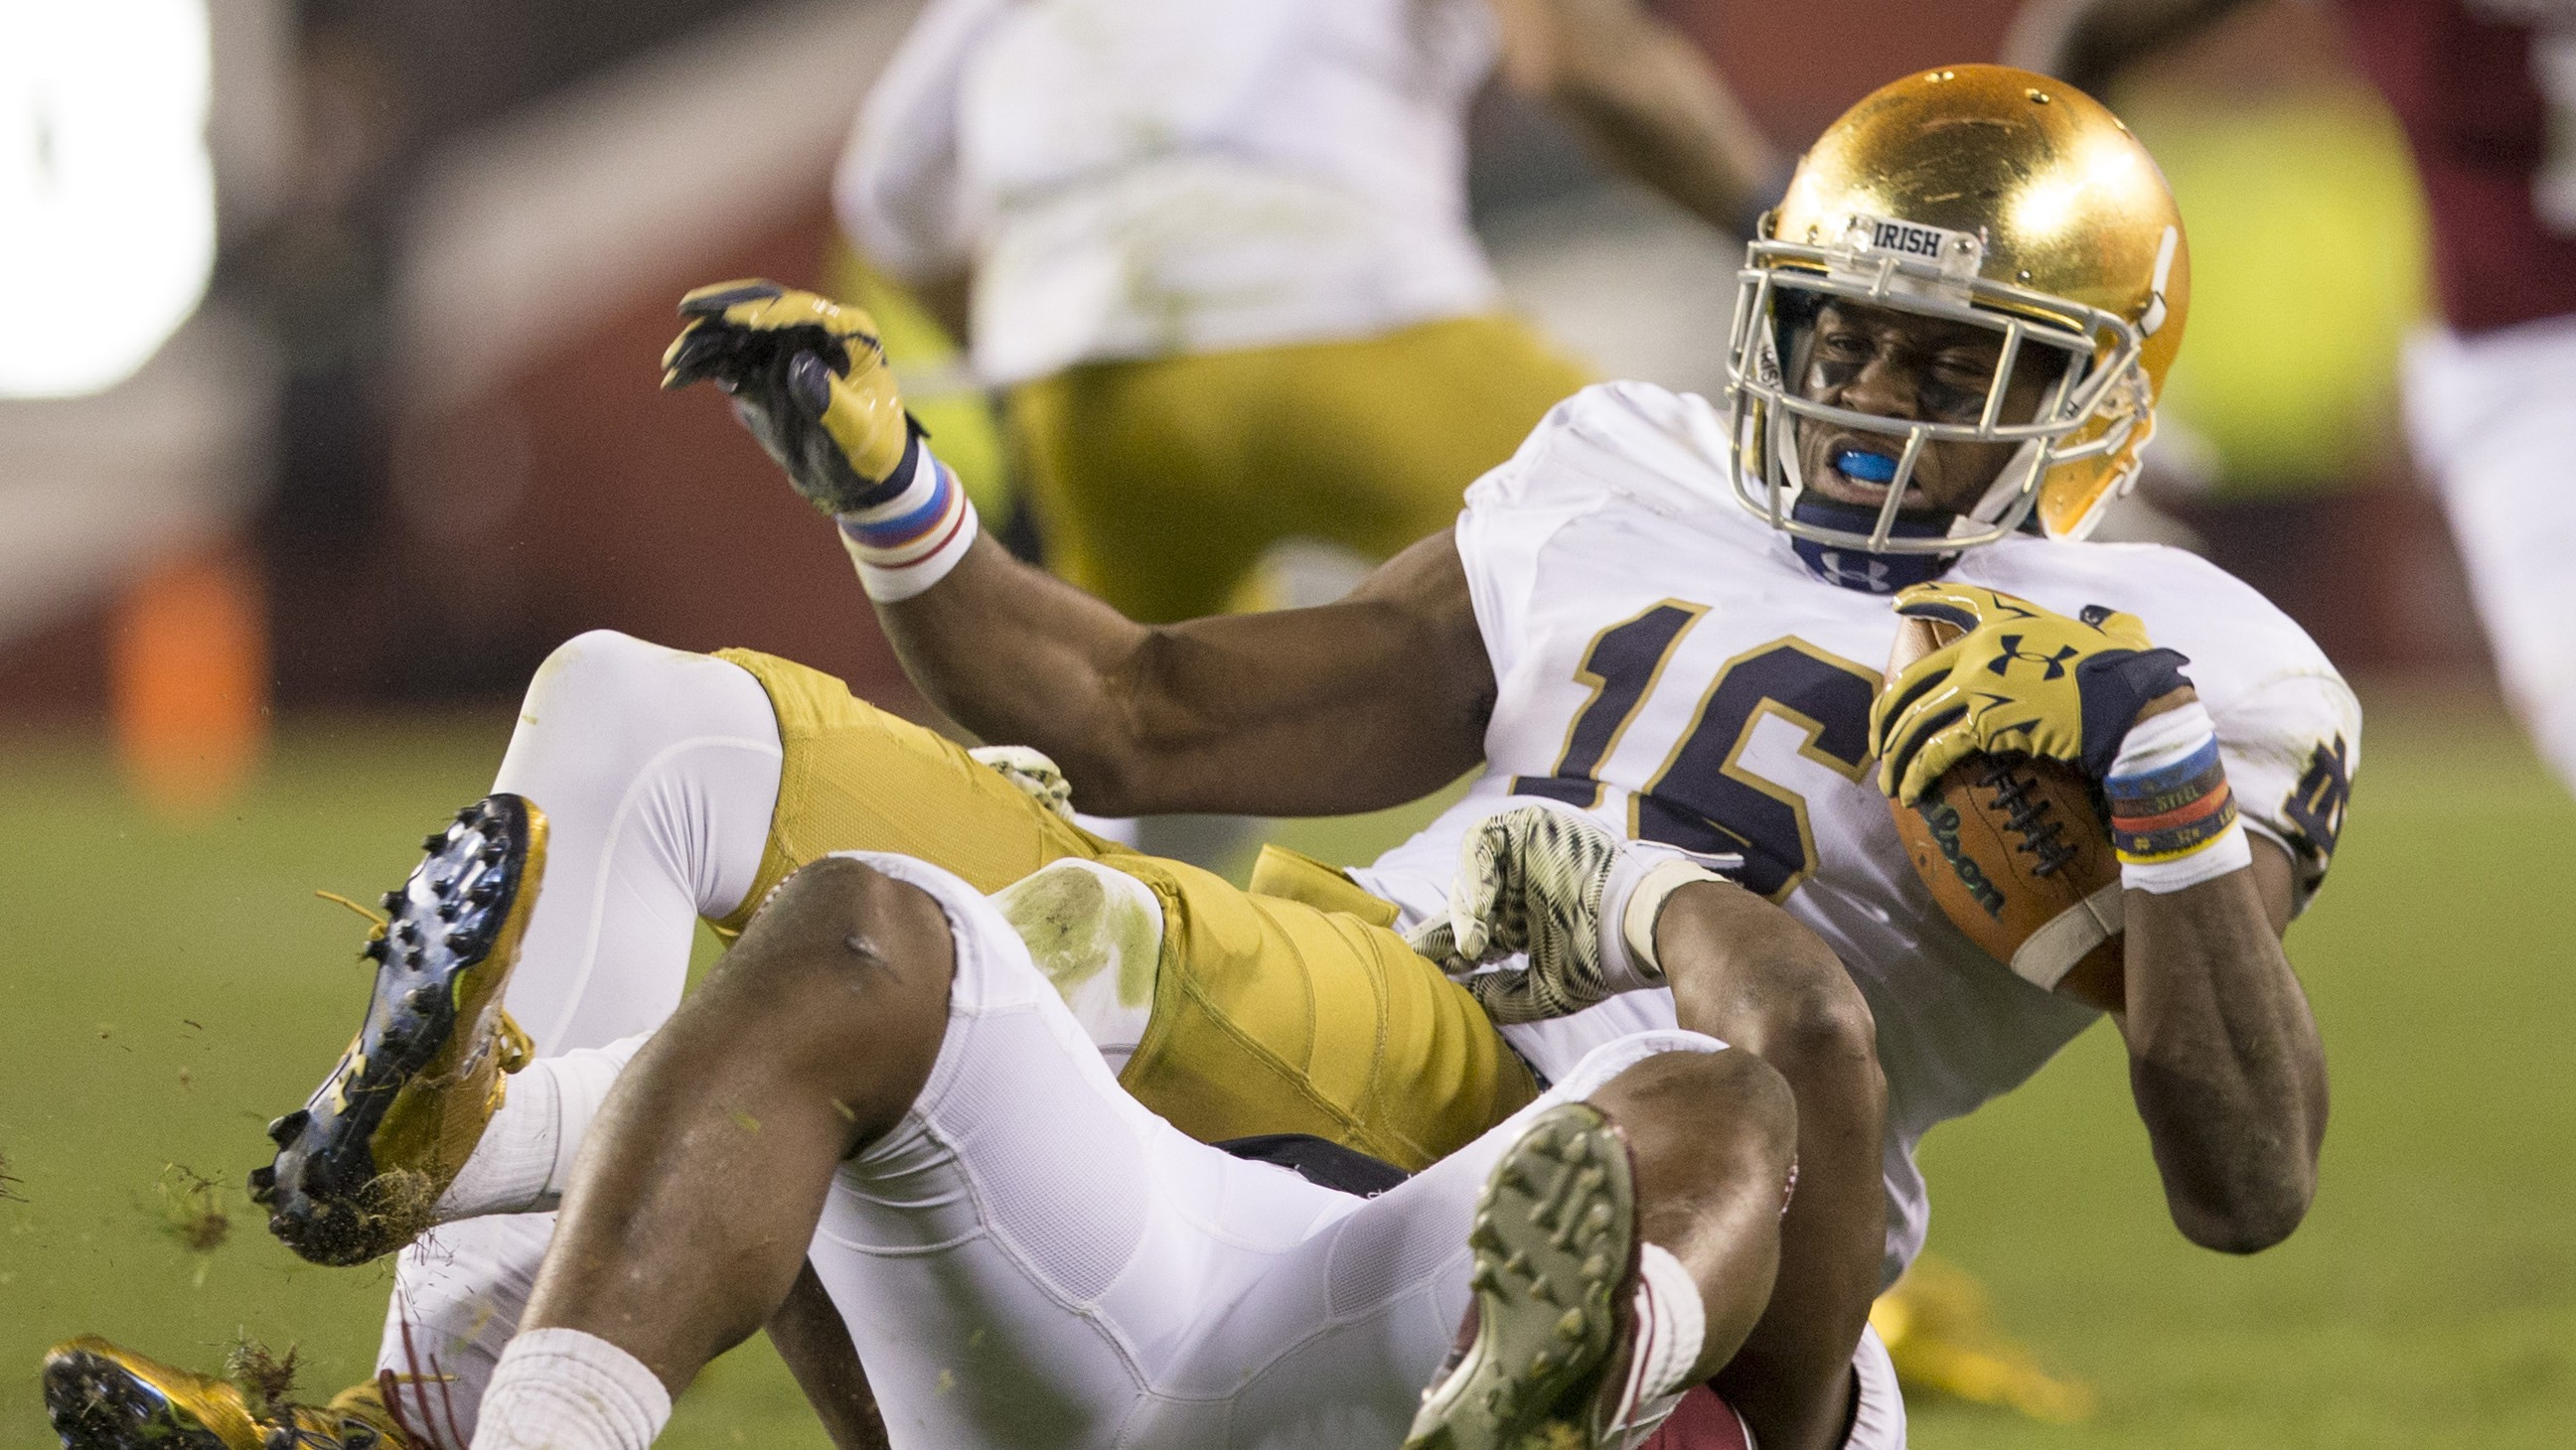 PHILADELPHIA, PA - OCTOBER 31: Torii Hunter Jr. #16 of the Notre Dame Fighting Irish catches a pass and is tackled by Avery Williams #2 of the Temple Owls on October 31, 2015 at Lincoln Financial Field in Philadelphia, Pennsylvania. The Notre Dame Fighting Irish defeated the Temple Owls 24-20. (Photo by Mitchell Leff/Getty Images)